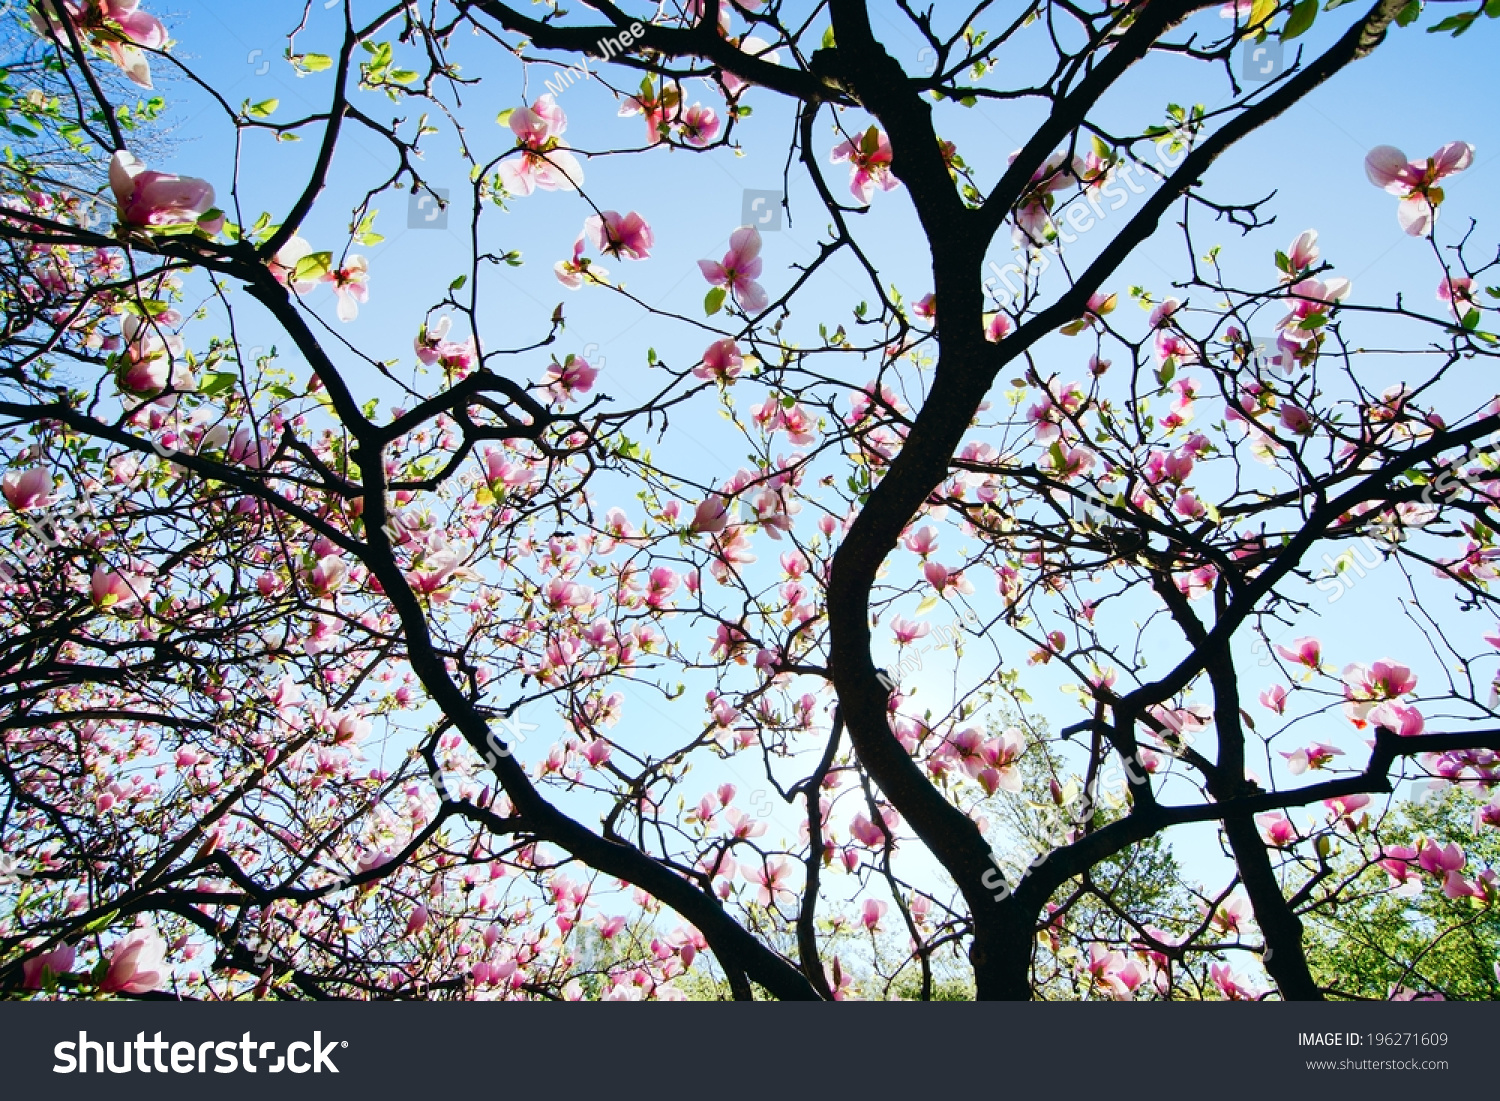 Blooming Magnolia Tree Pink Flowers Against Stock Photo 196271609